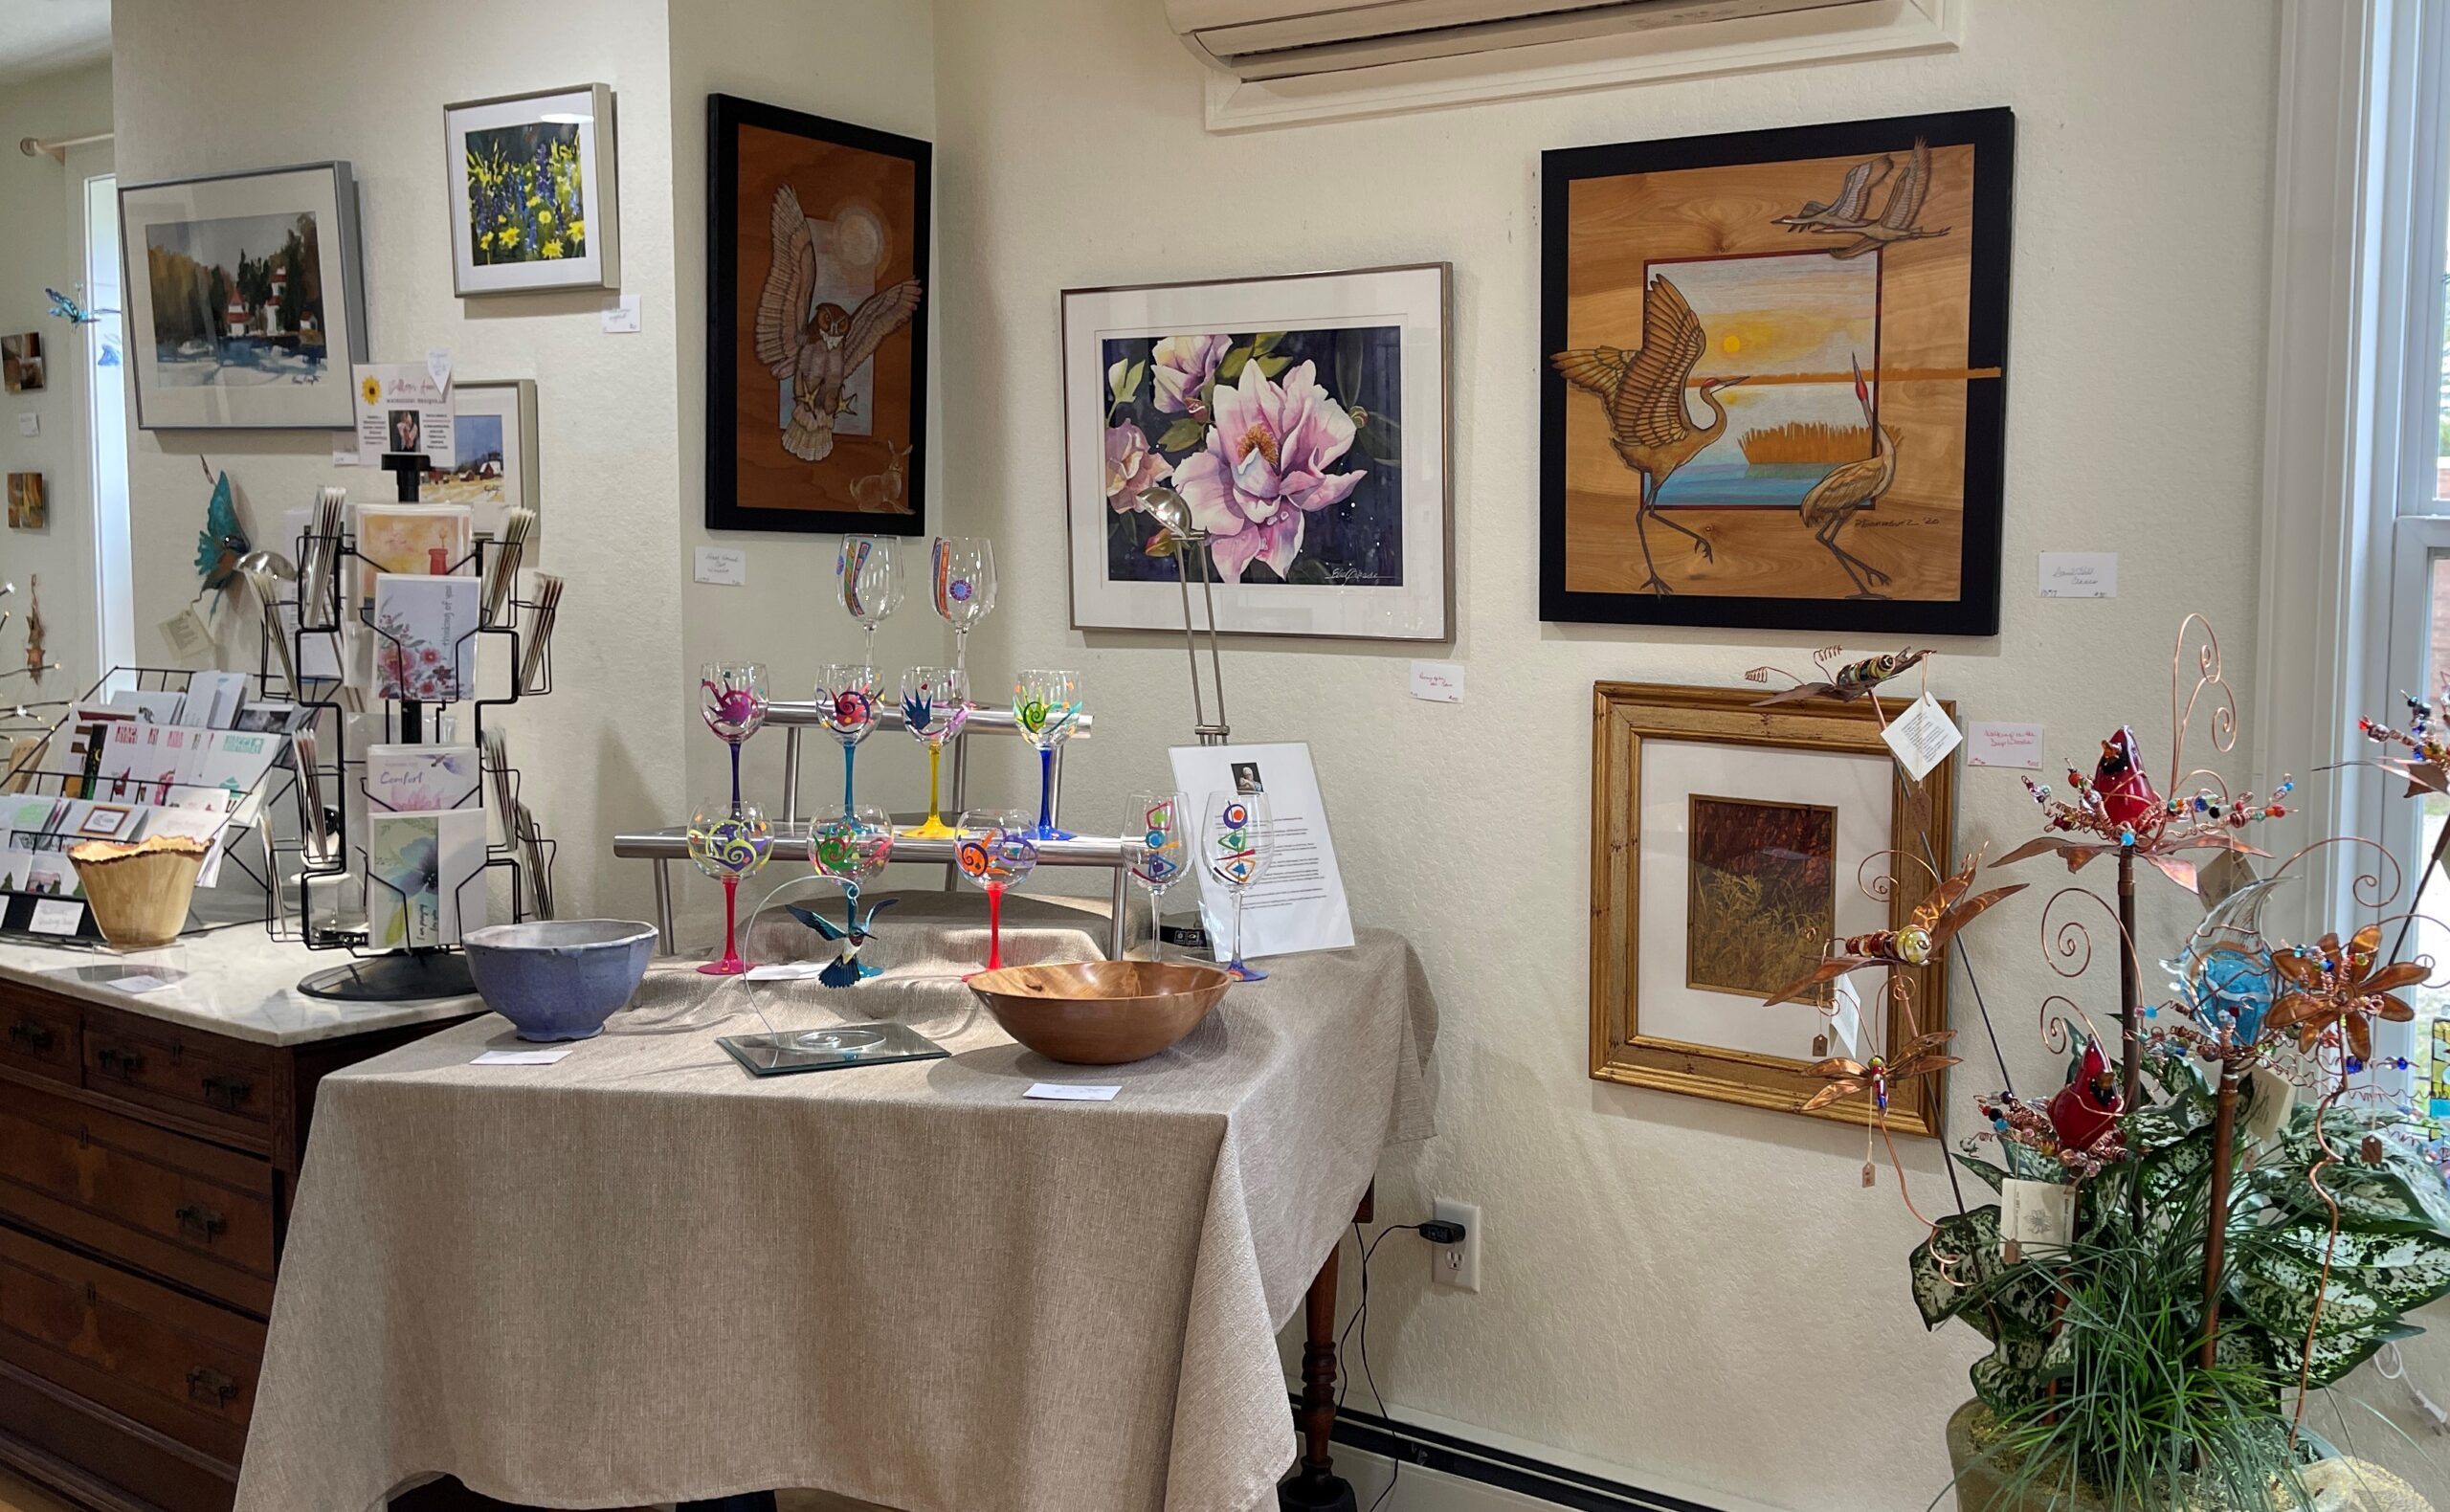 Check out the Little Shop of Art in Elkhart Lake, WI.